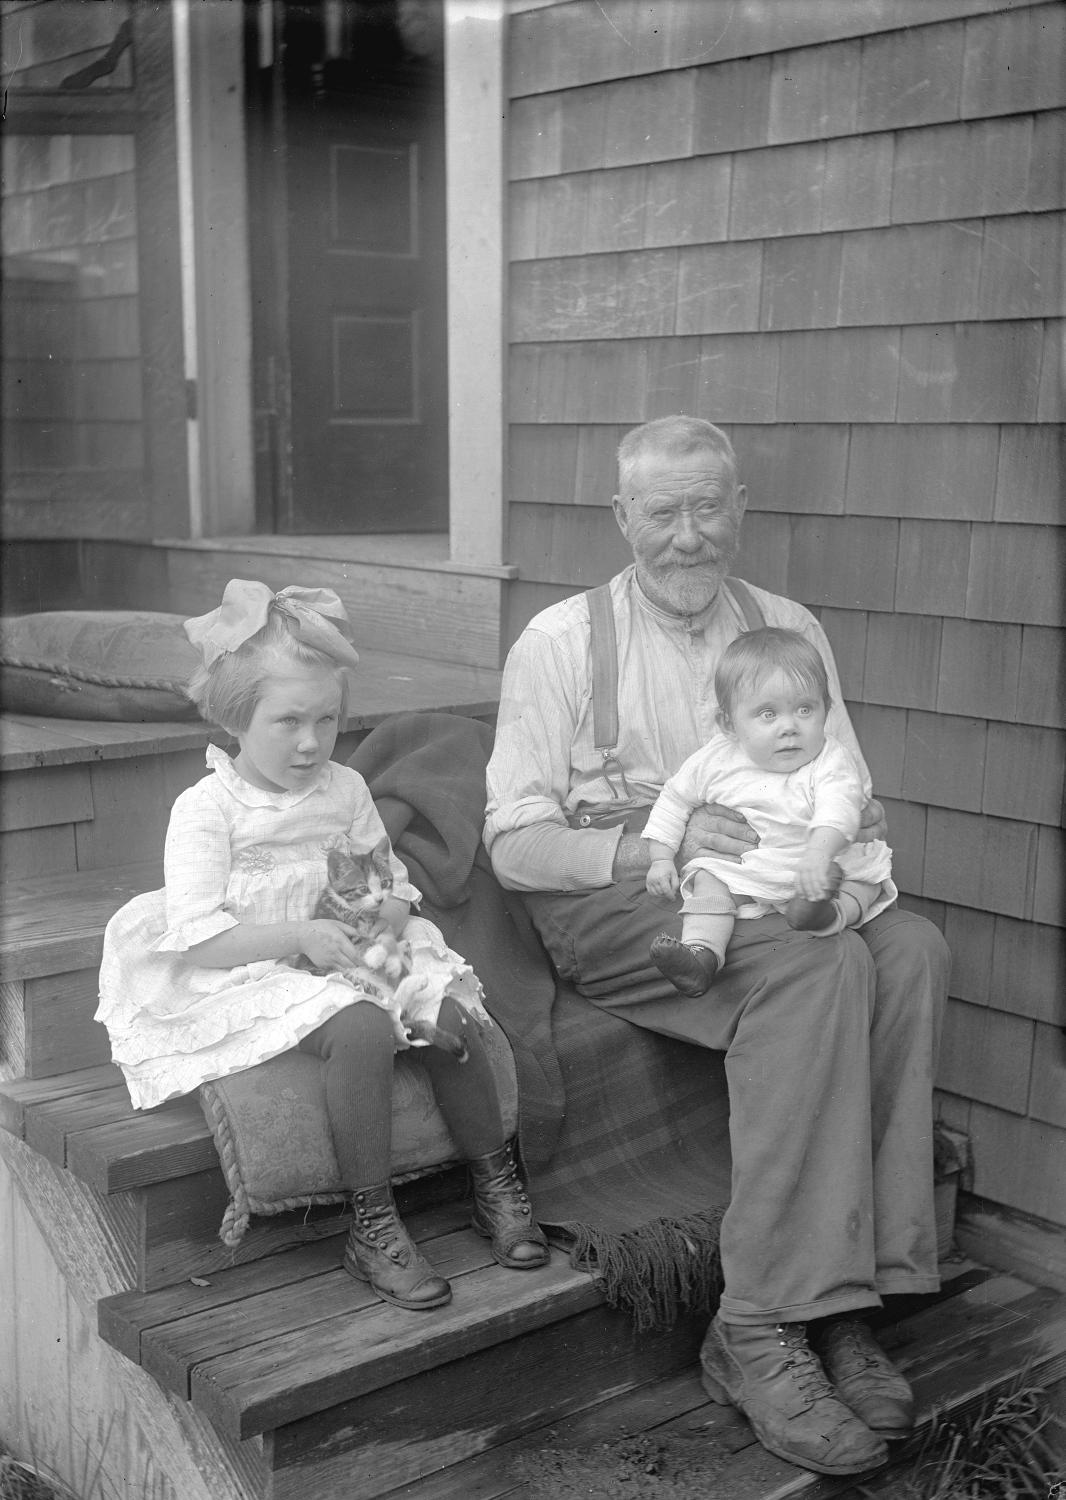 Man with baby, girl and cat, 1921. Reference code AM336-S3-1-: CVA 677-1061